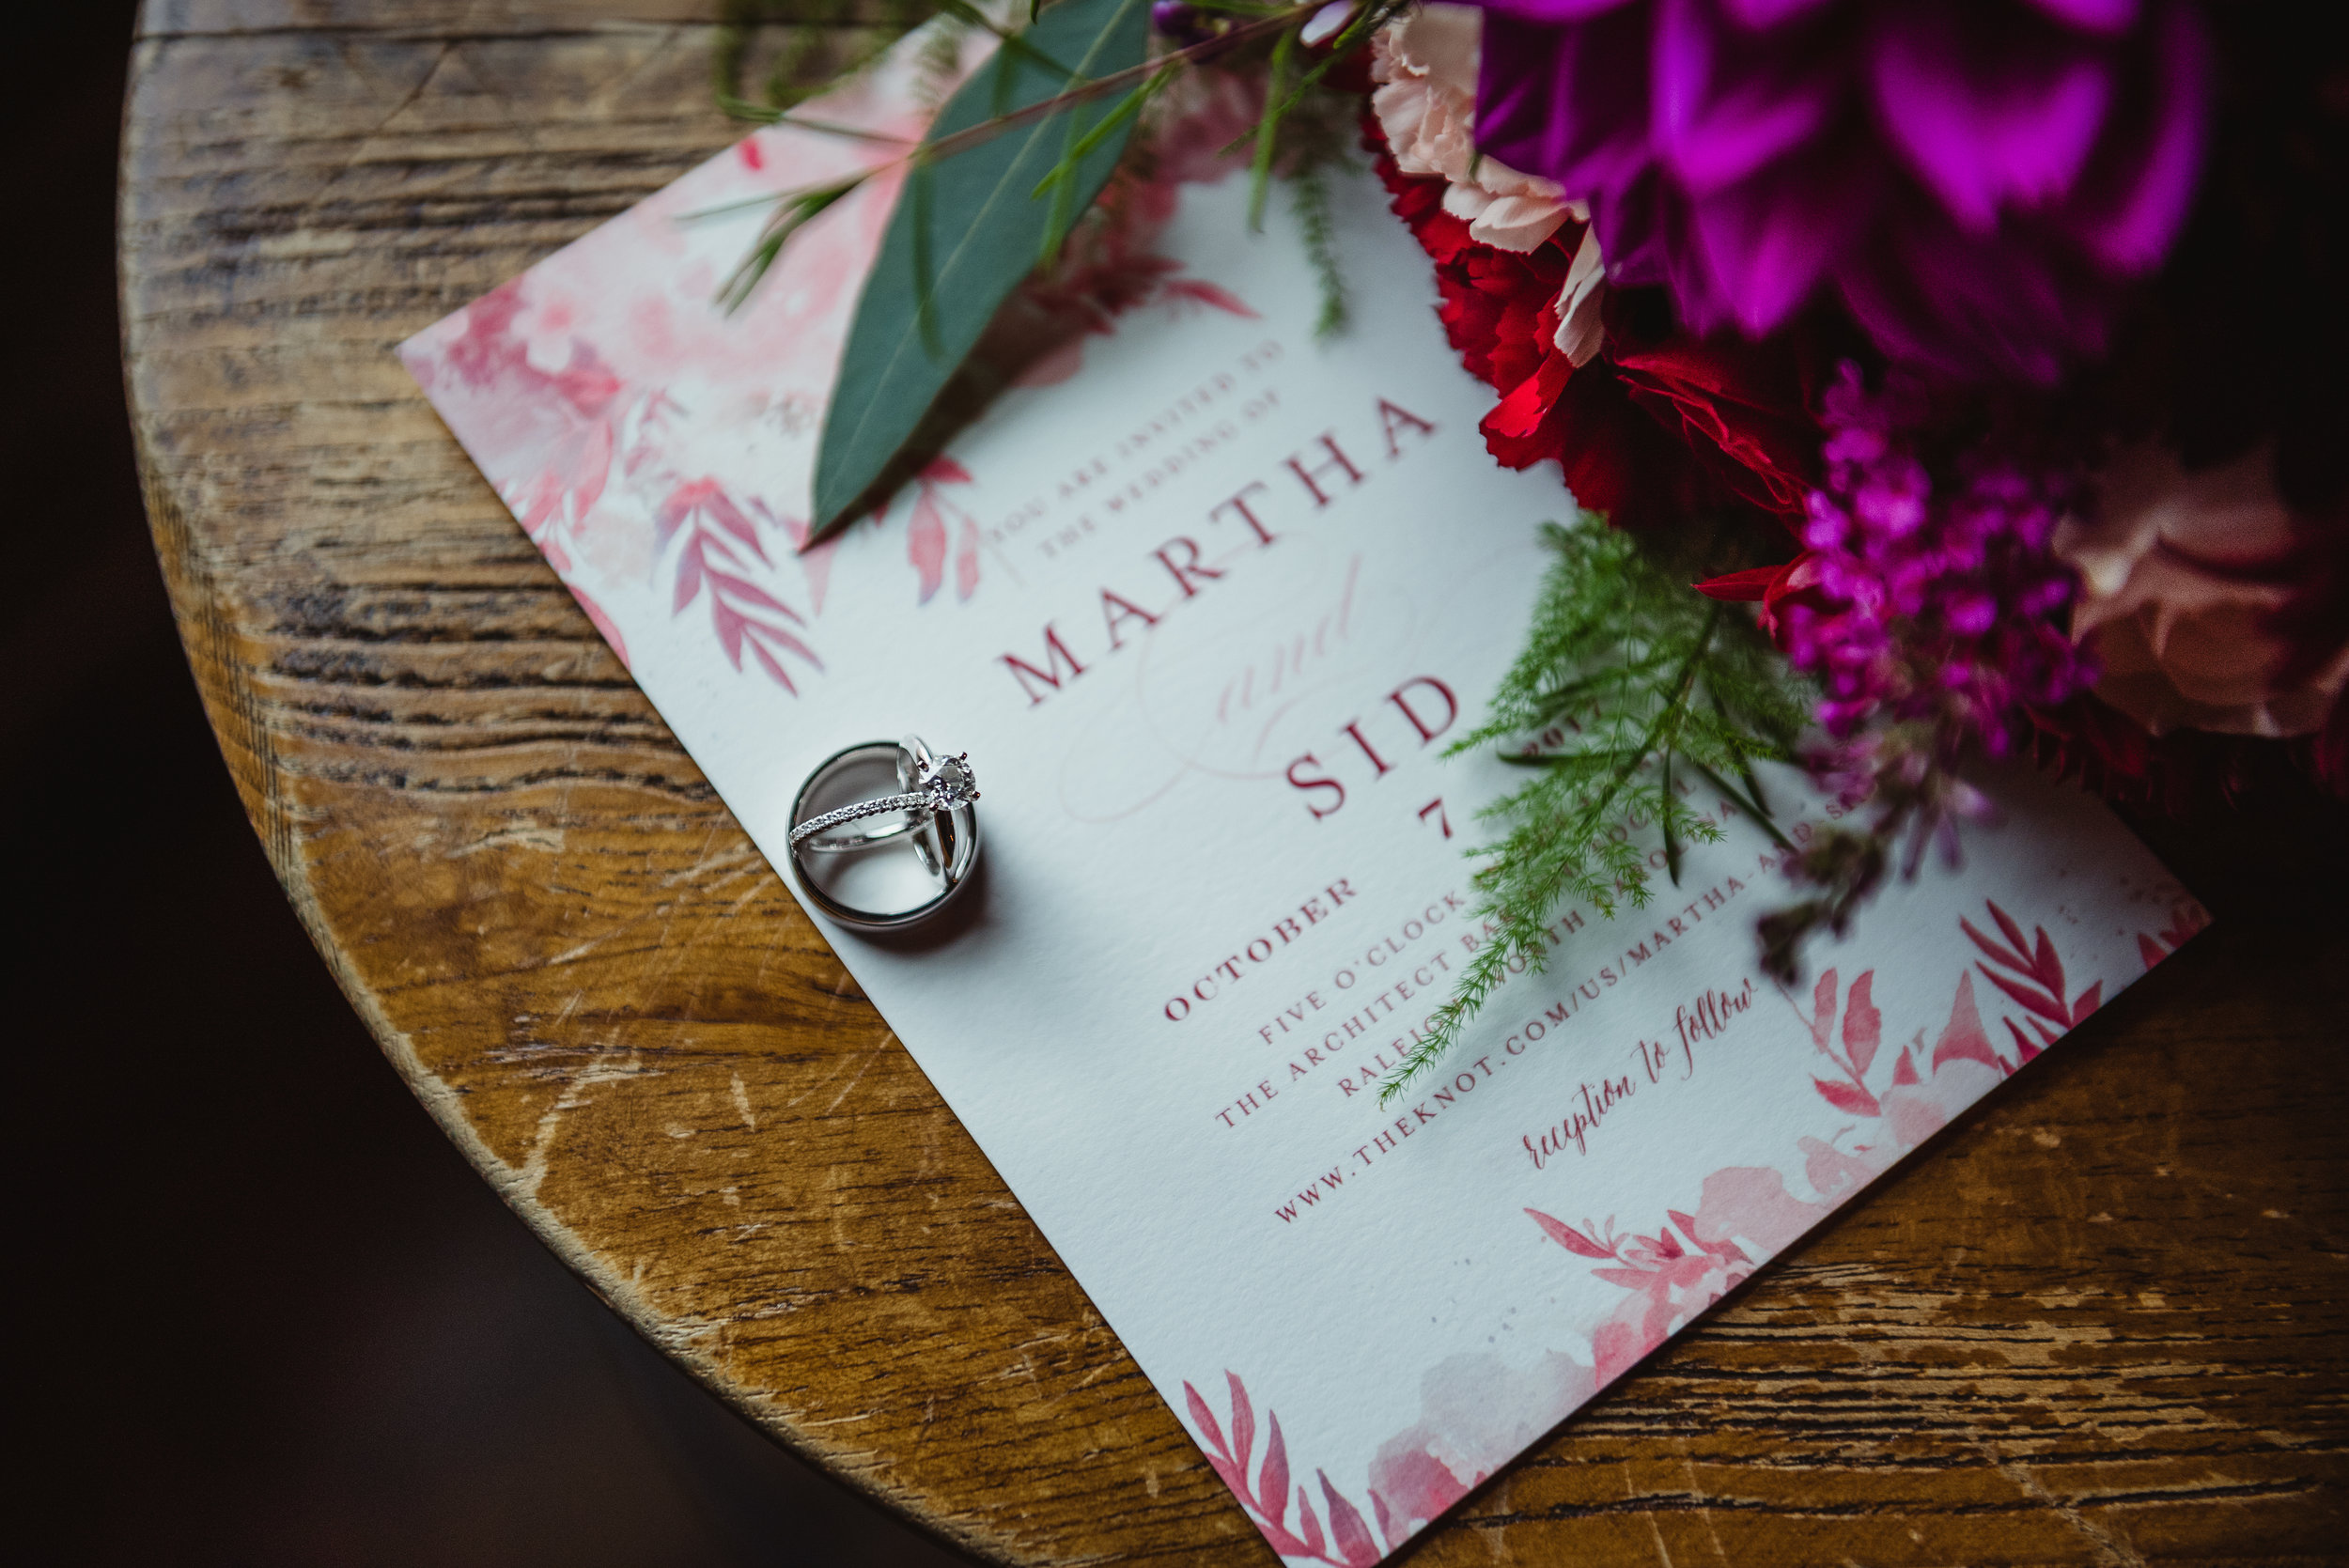 Raleigh-wedding-photographer-ring-and-invite-detail-shot-rose-trail-images.jpg